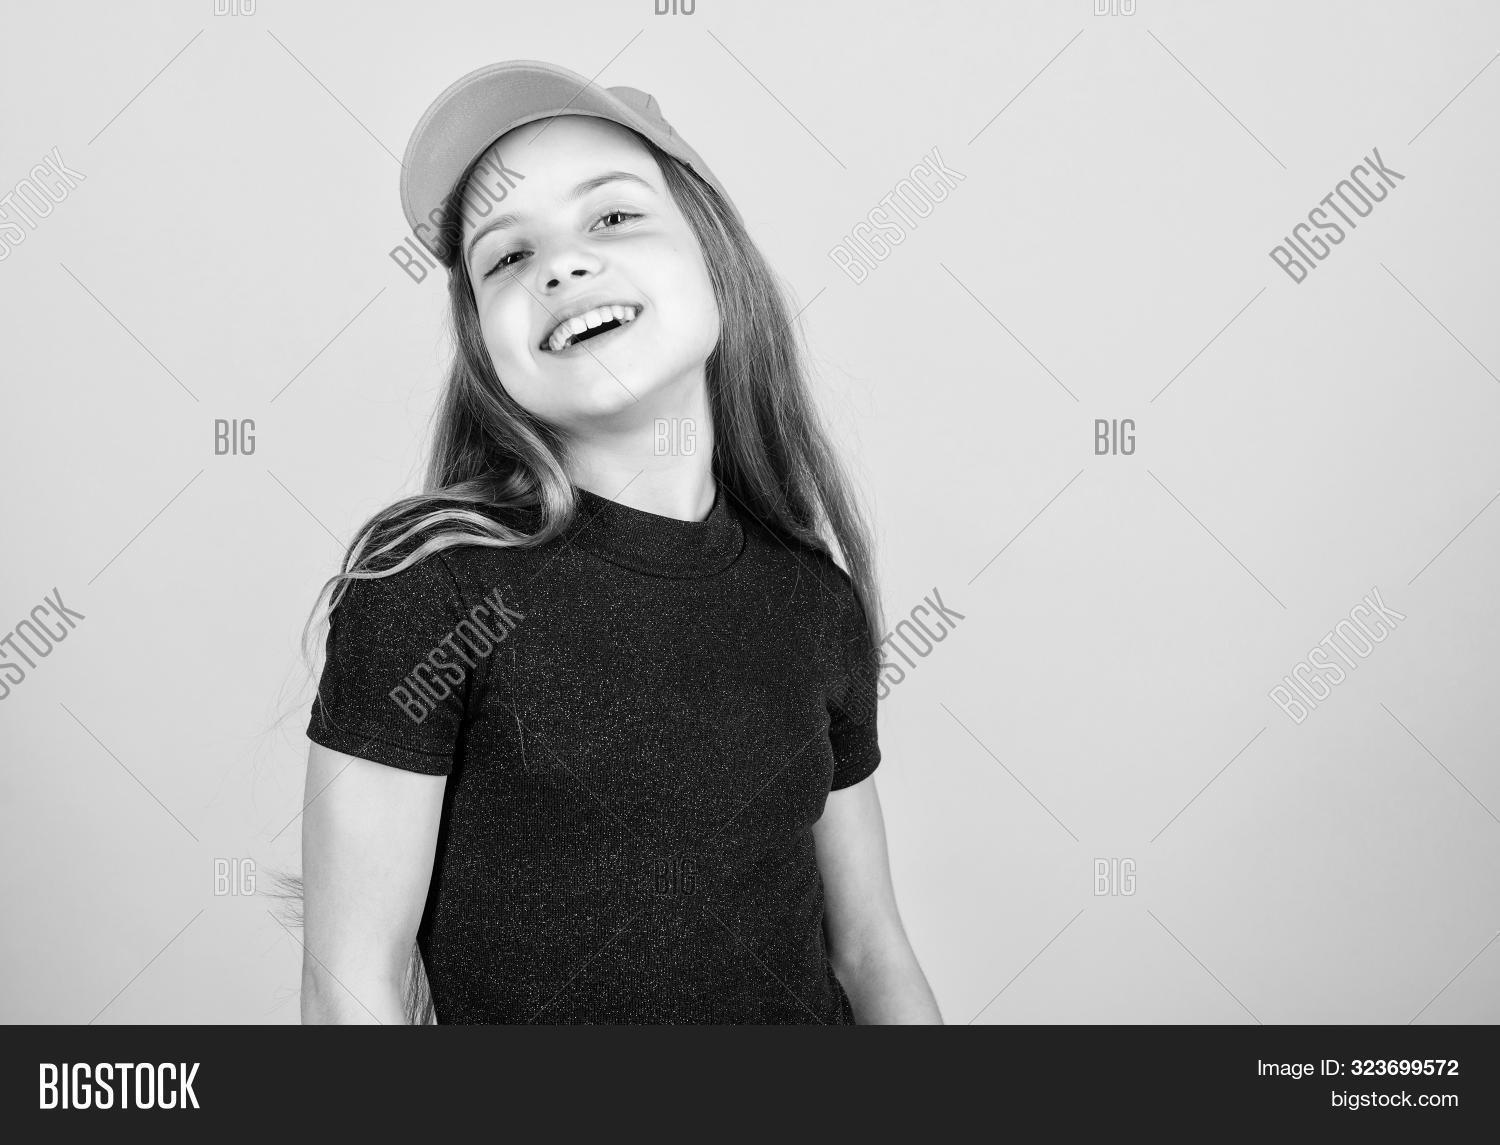 accessory,adorable,background,baseball,beige,bright,brim,cap,caucasian,child,childhood,clothes,concept,confident,cool,cute,enjoy,fashion,fashionable,fashionista,feeling,girl,hat,hobby,kid,leisure,little,model,modern,outfit,protective,school,schoolgirl,snapback,sport,spring,style,stylish,summer,teen,this,wear,wearing,youth